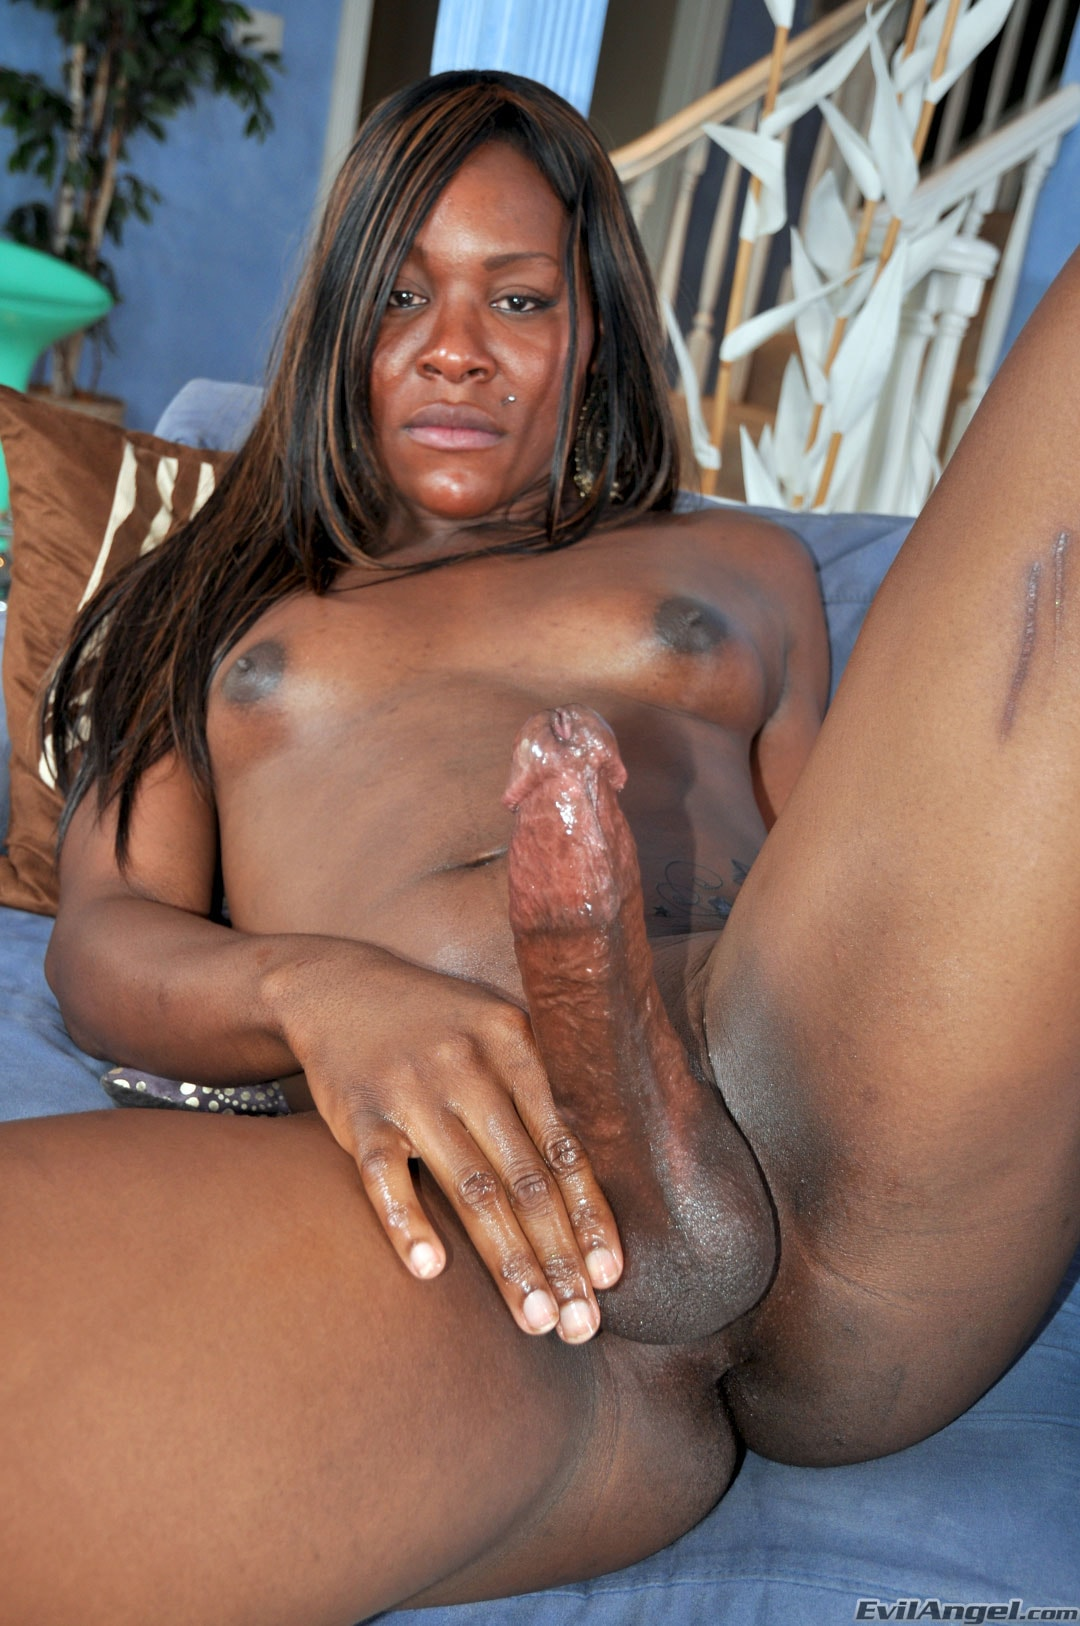 I Love Black Shemales 'Black Shemale Idol - The Auditions' starring Sex Kitten (Photo 27)